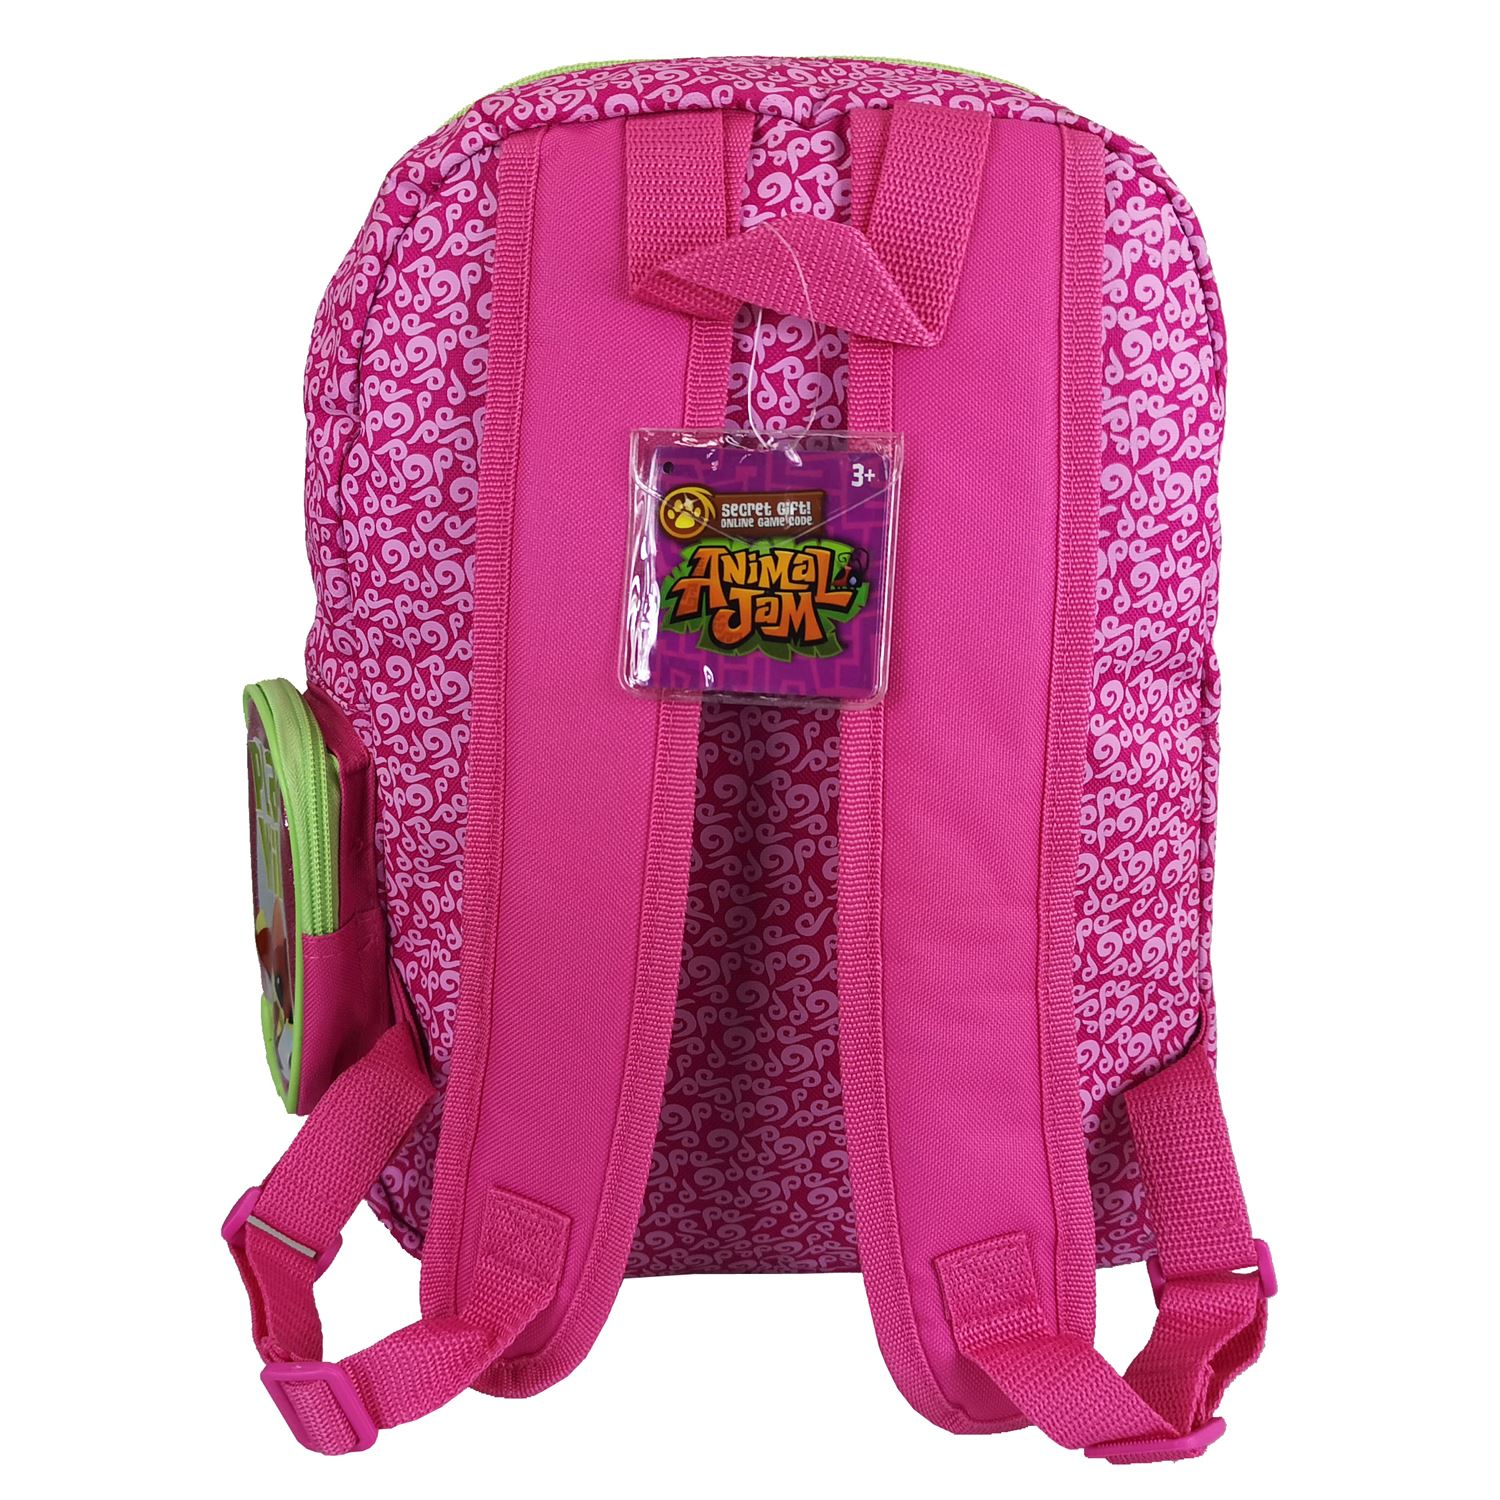 Animal Jam Junior Glitter Backpack Large Pink /& Green Bag with Glitter Finish